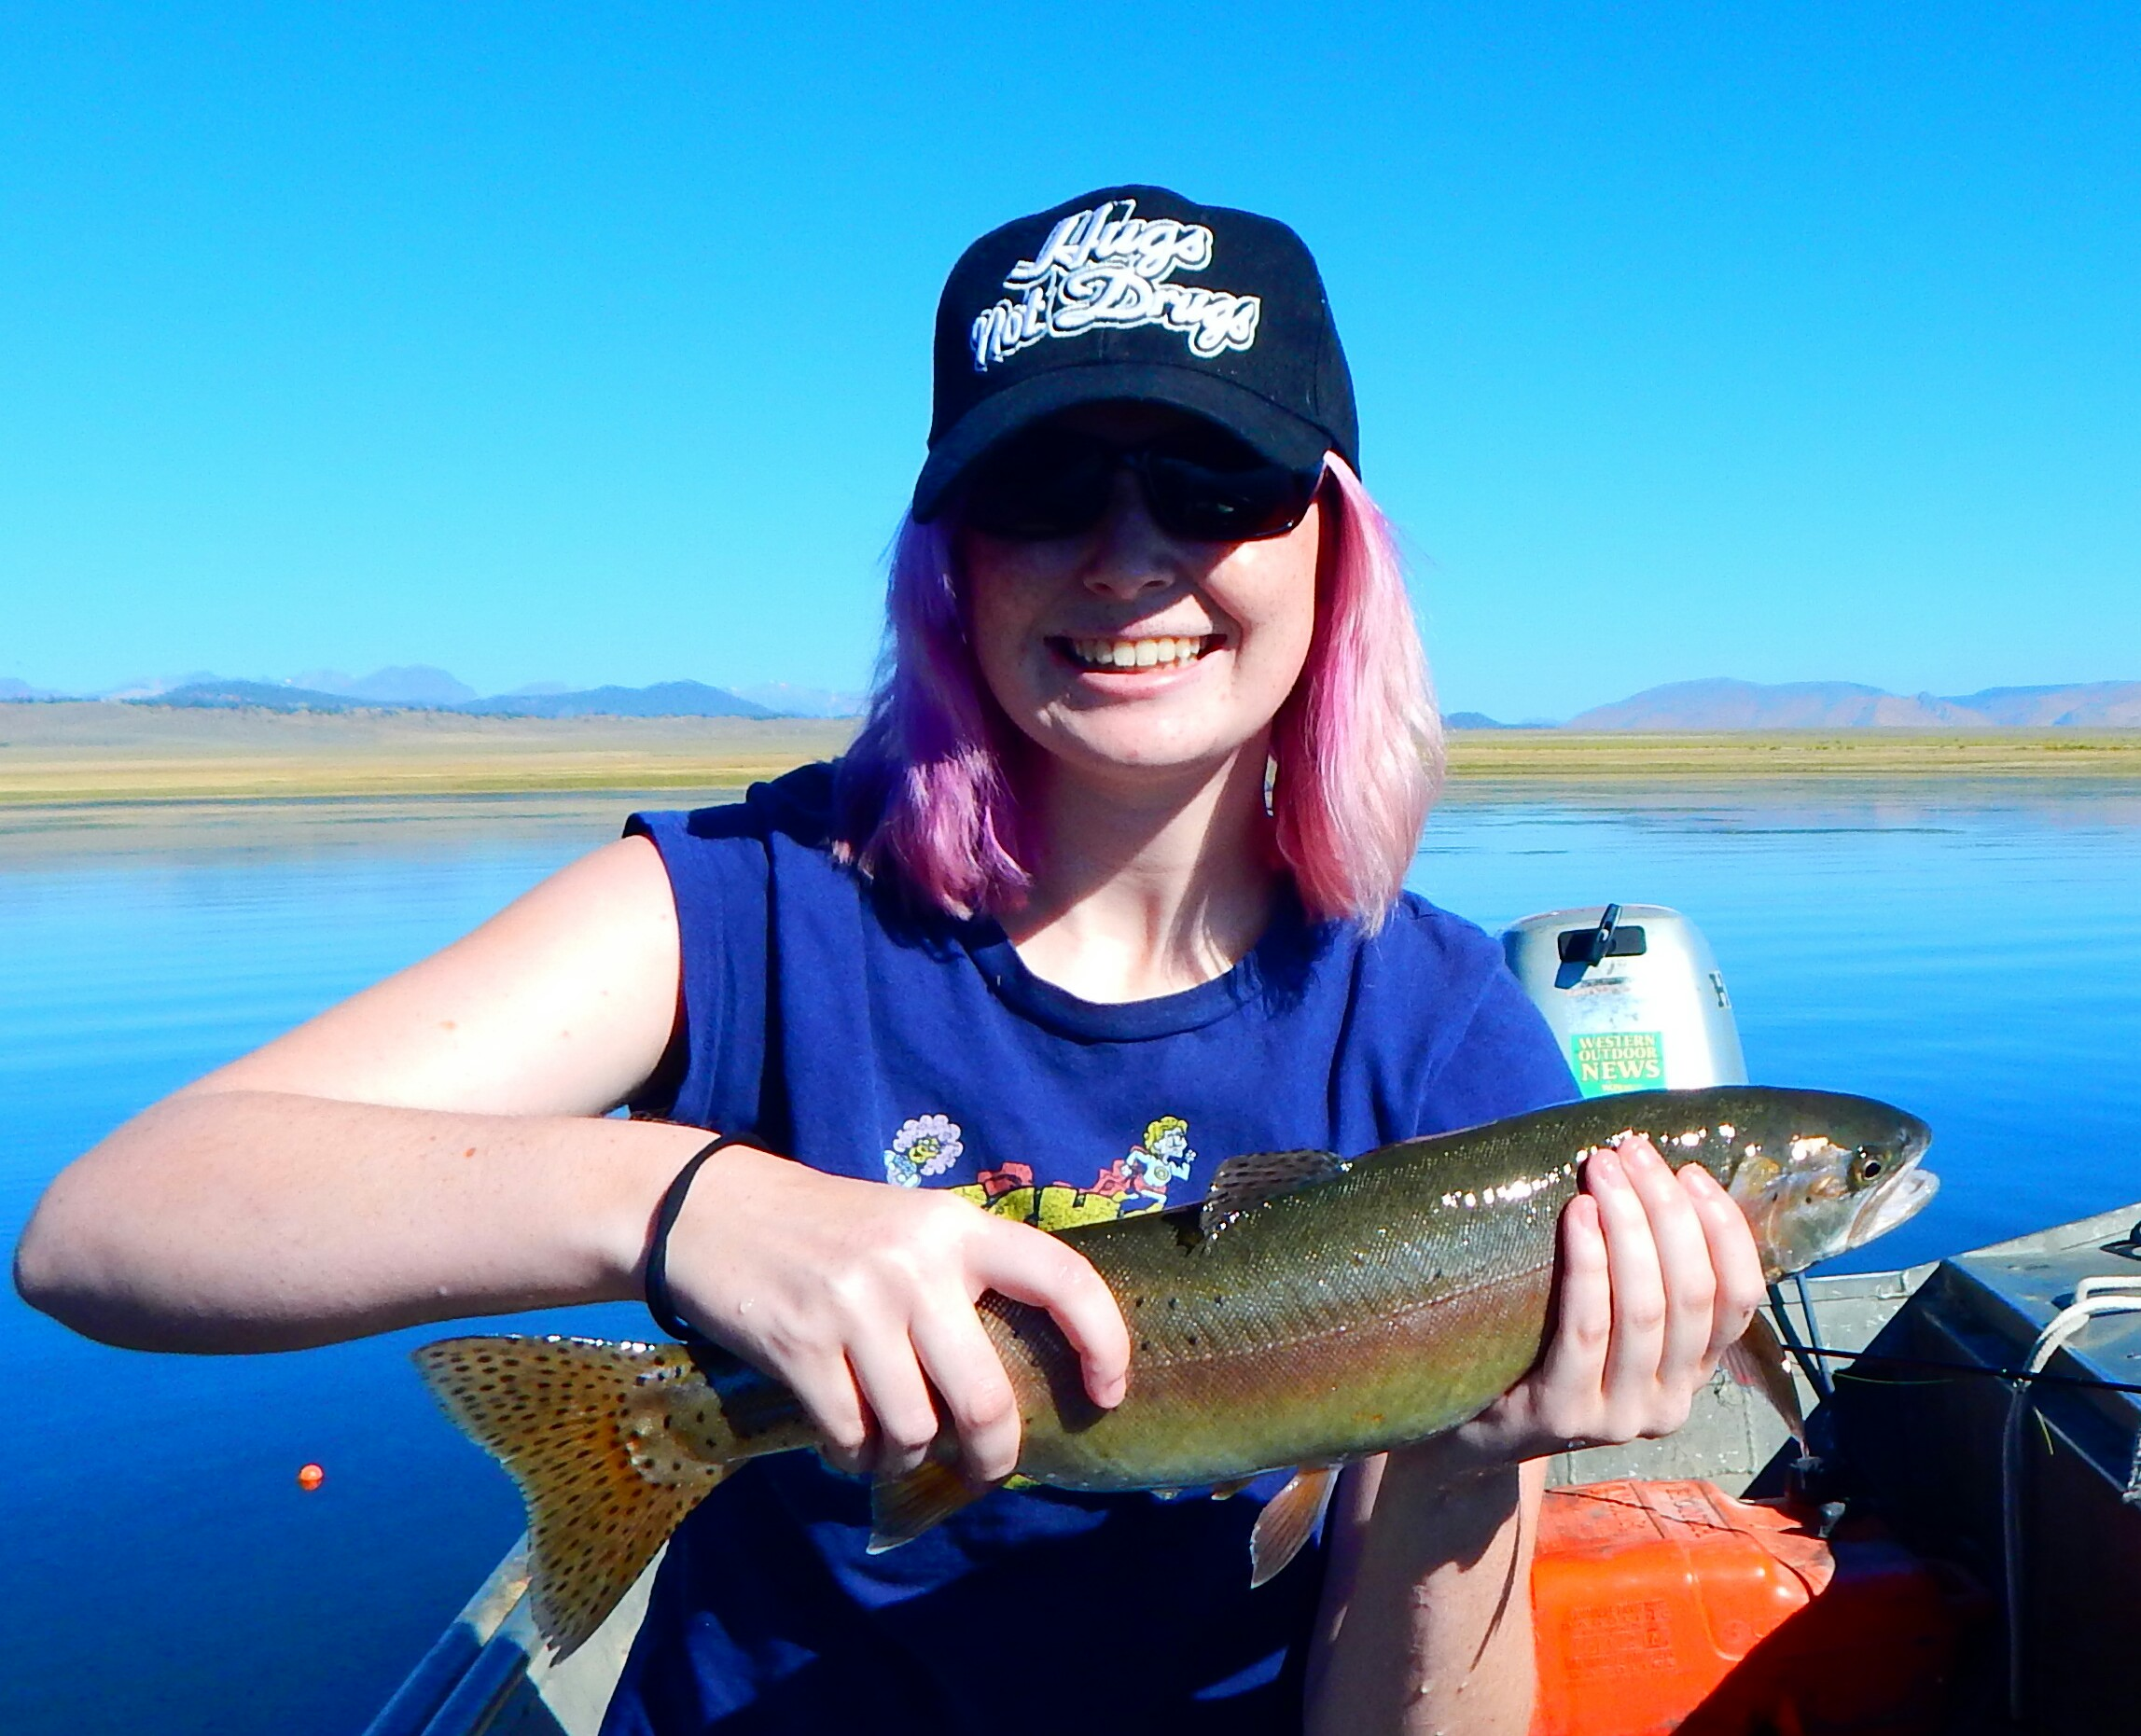 …and Savannah again this two summers ago at 17 years, out fishing dad on Lake Crowley.:)